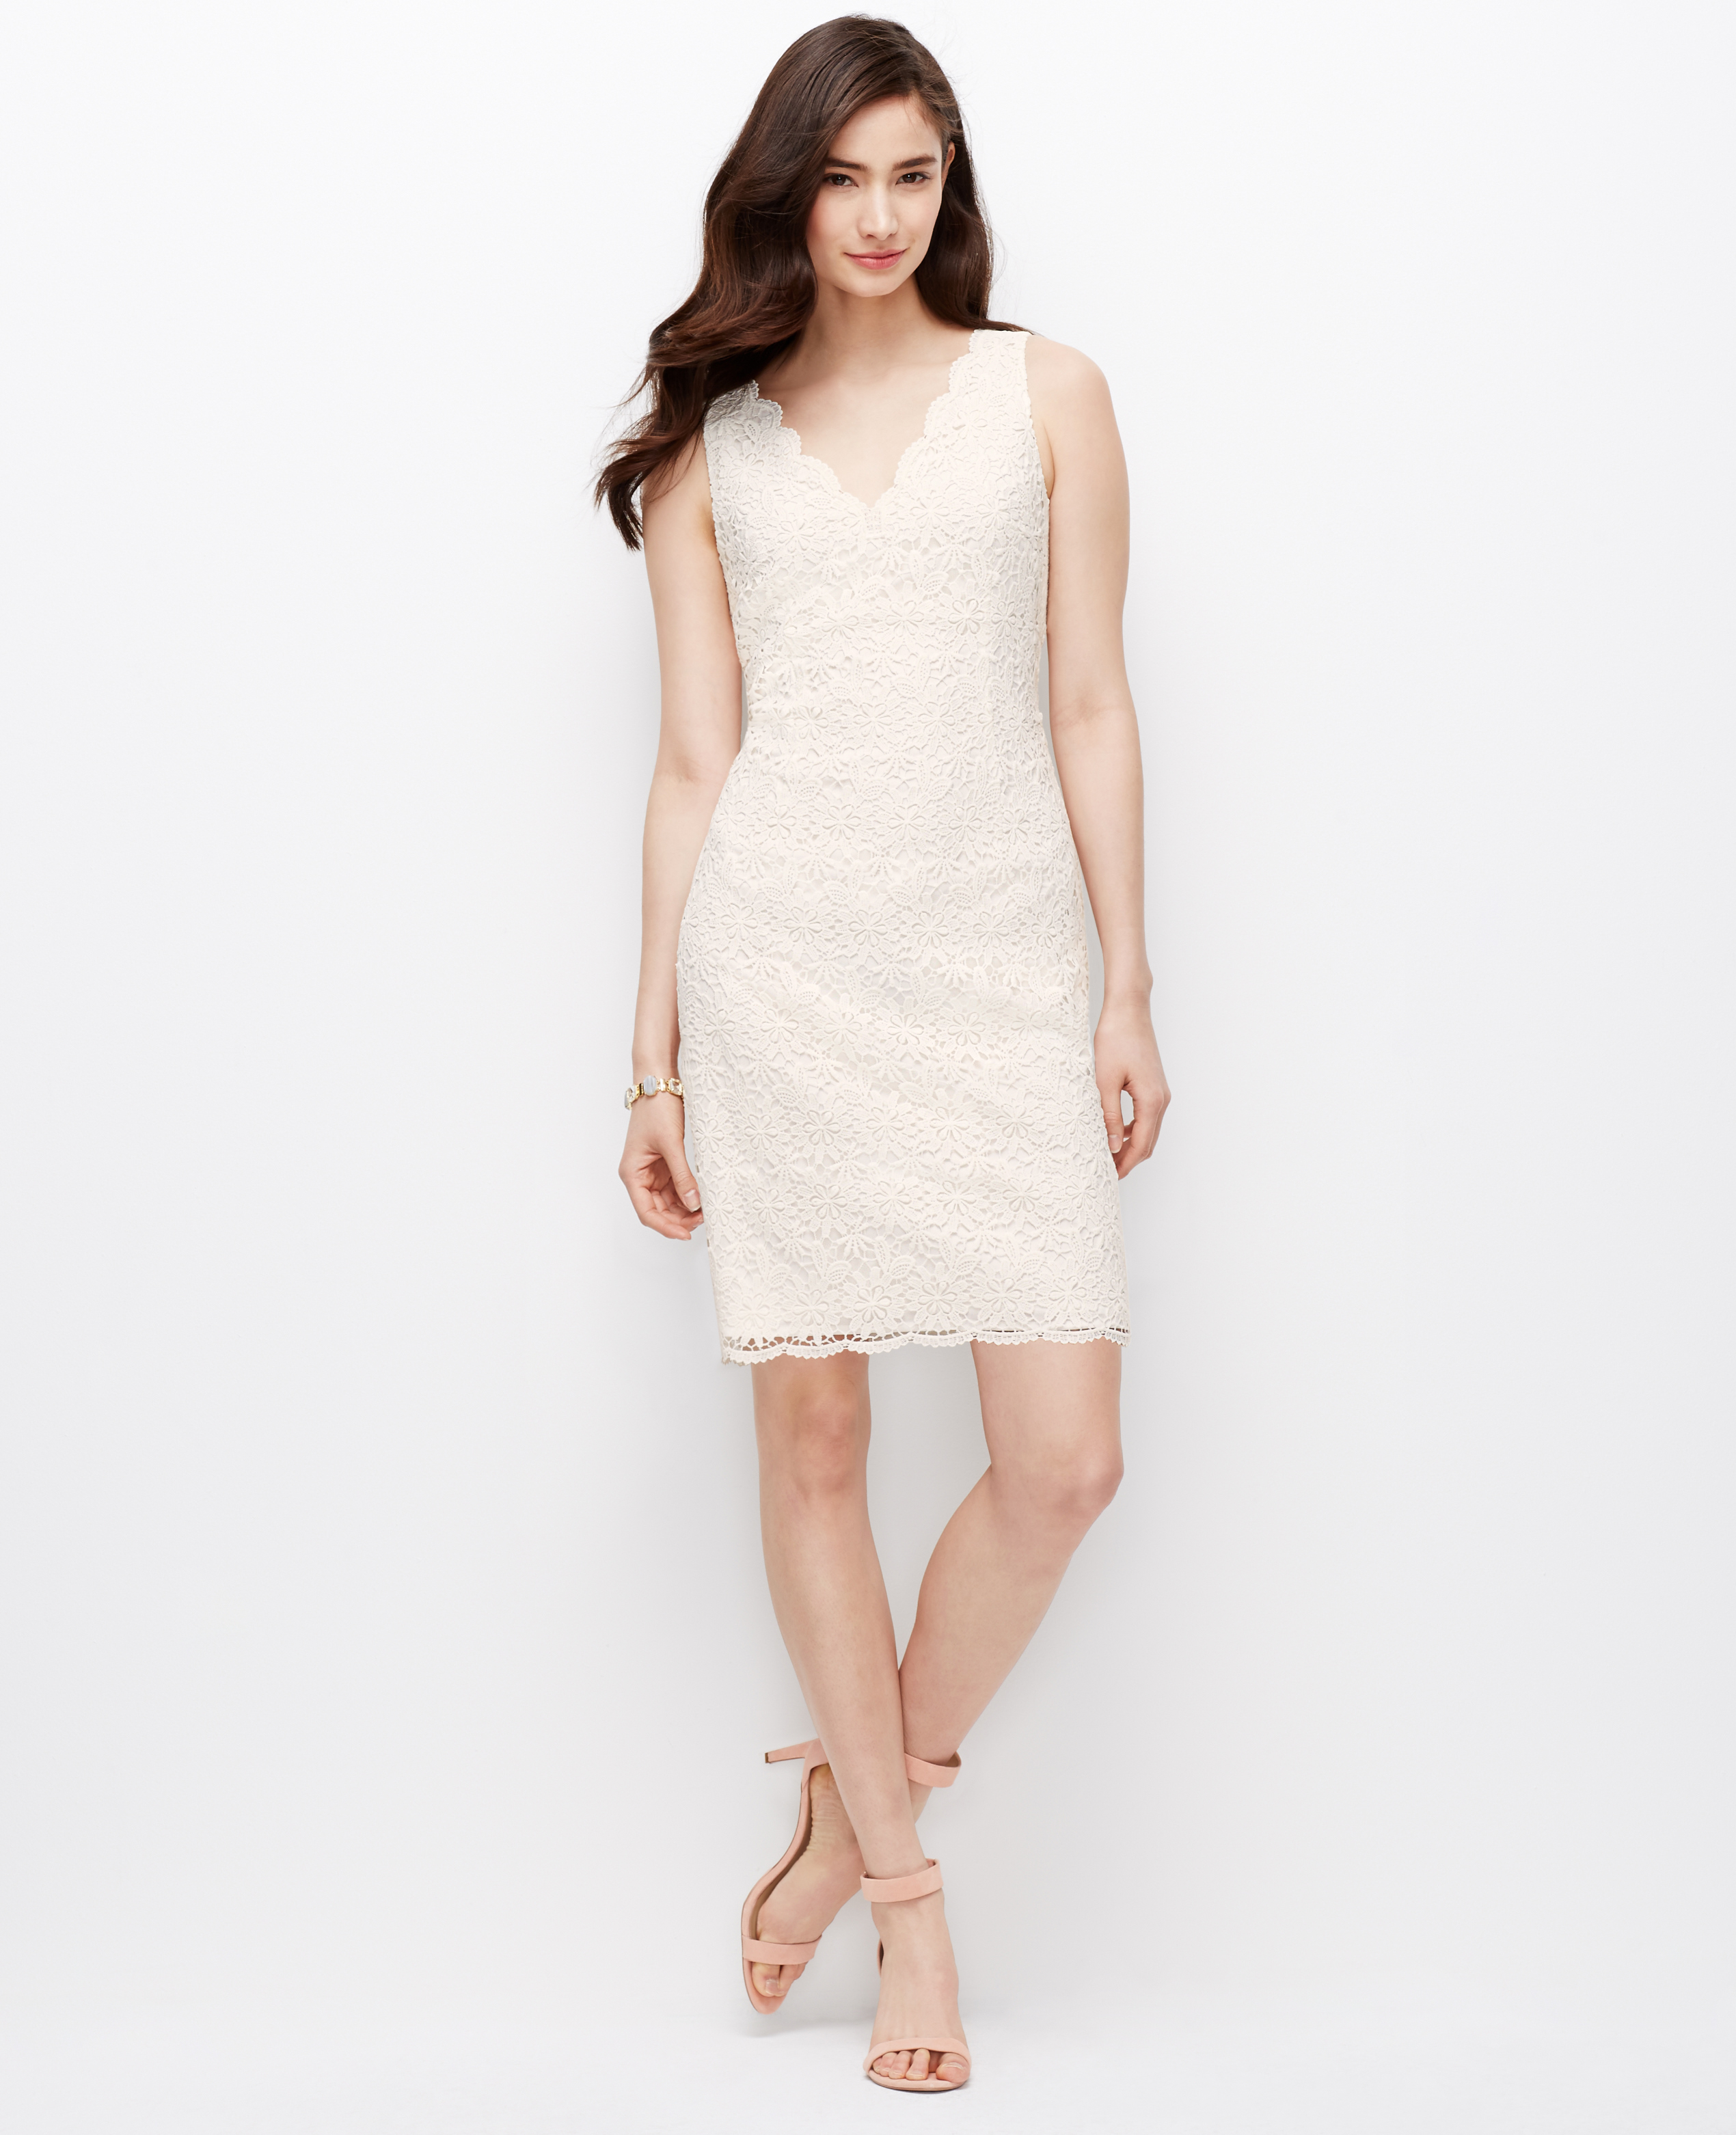 Lyst - Ann taylor Scalloped Lace Dress in White